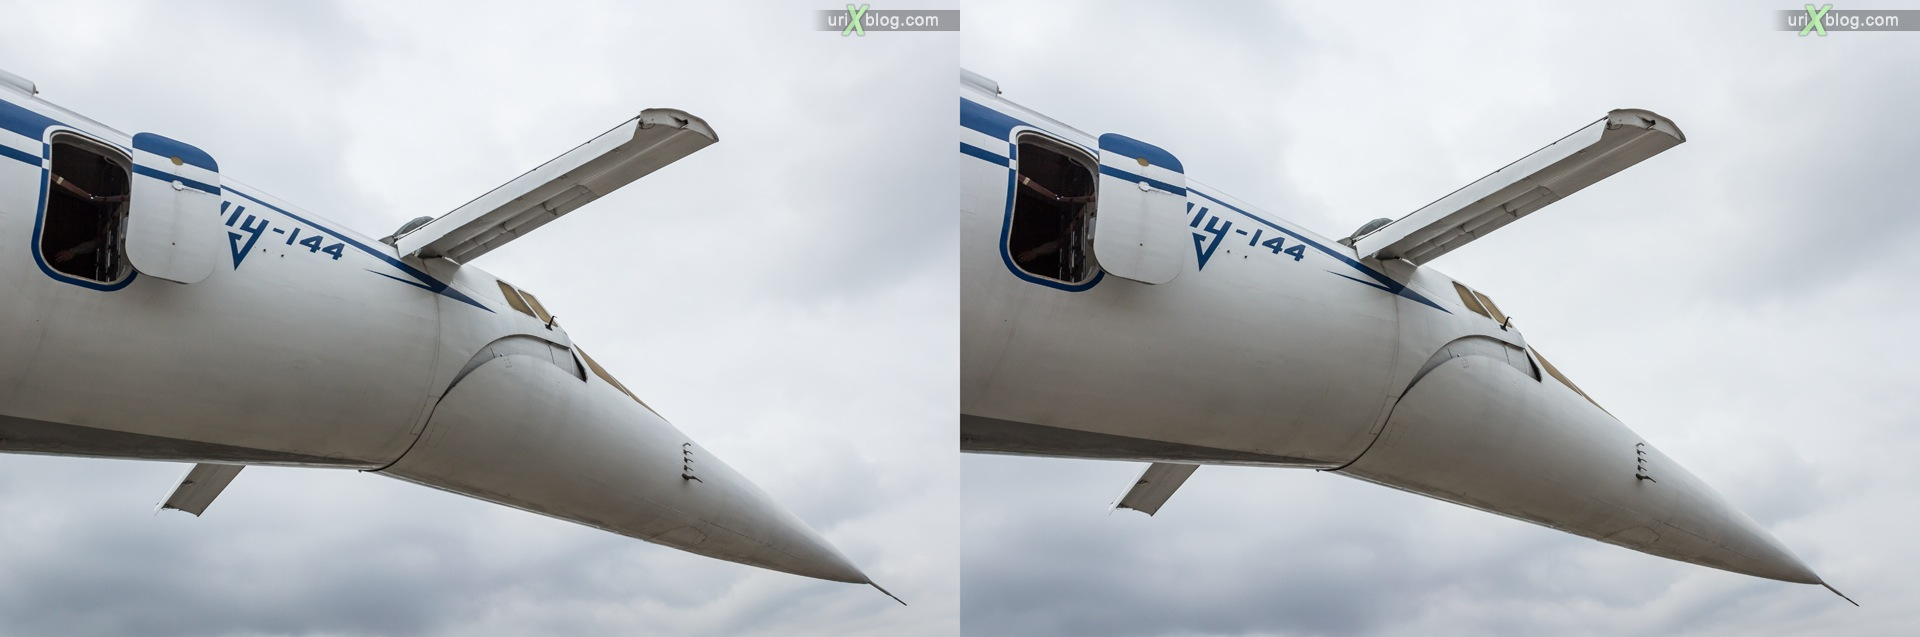 2013, Tu-144, MAKS, International Aviation and Space Salon, Russia, Ramenskoye airfield, airplane, 3D, stereo pair, cross-eyed, crossview, cross view stereo pair, stereoscopic